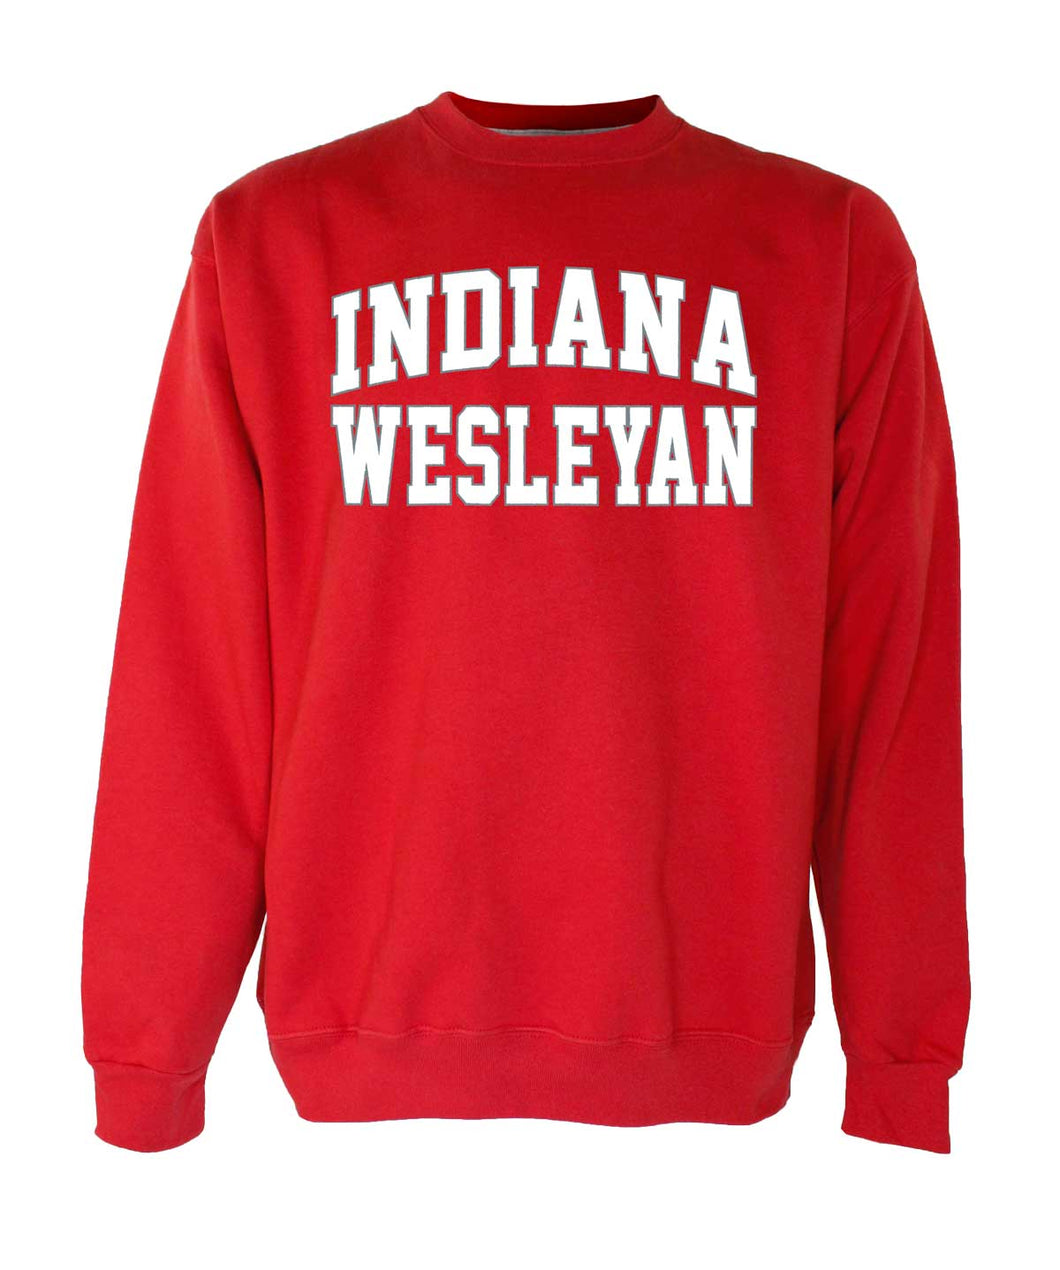 OnMission Crew Neck Sweatshirt, Red